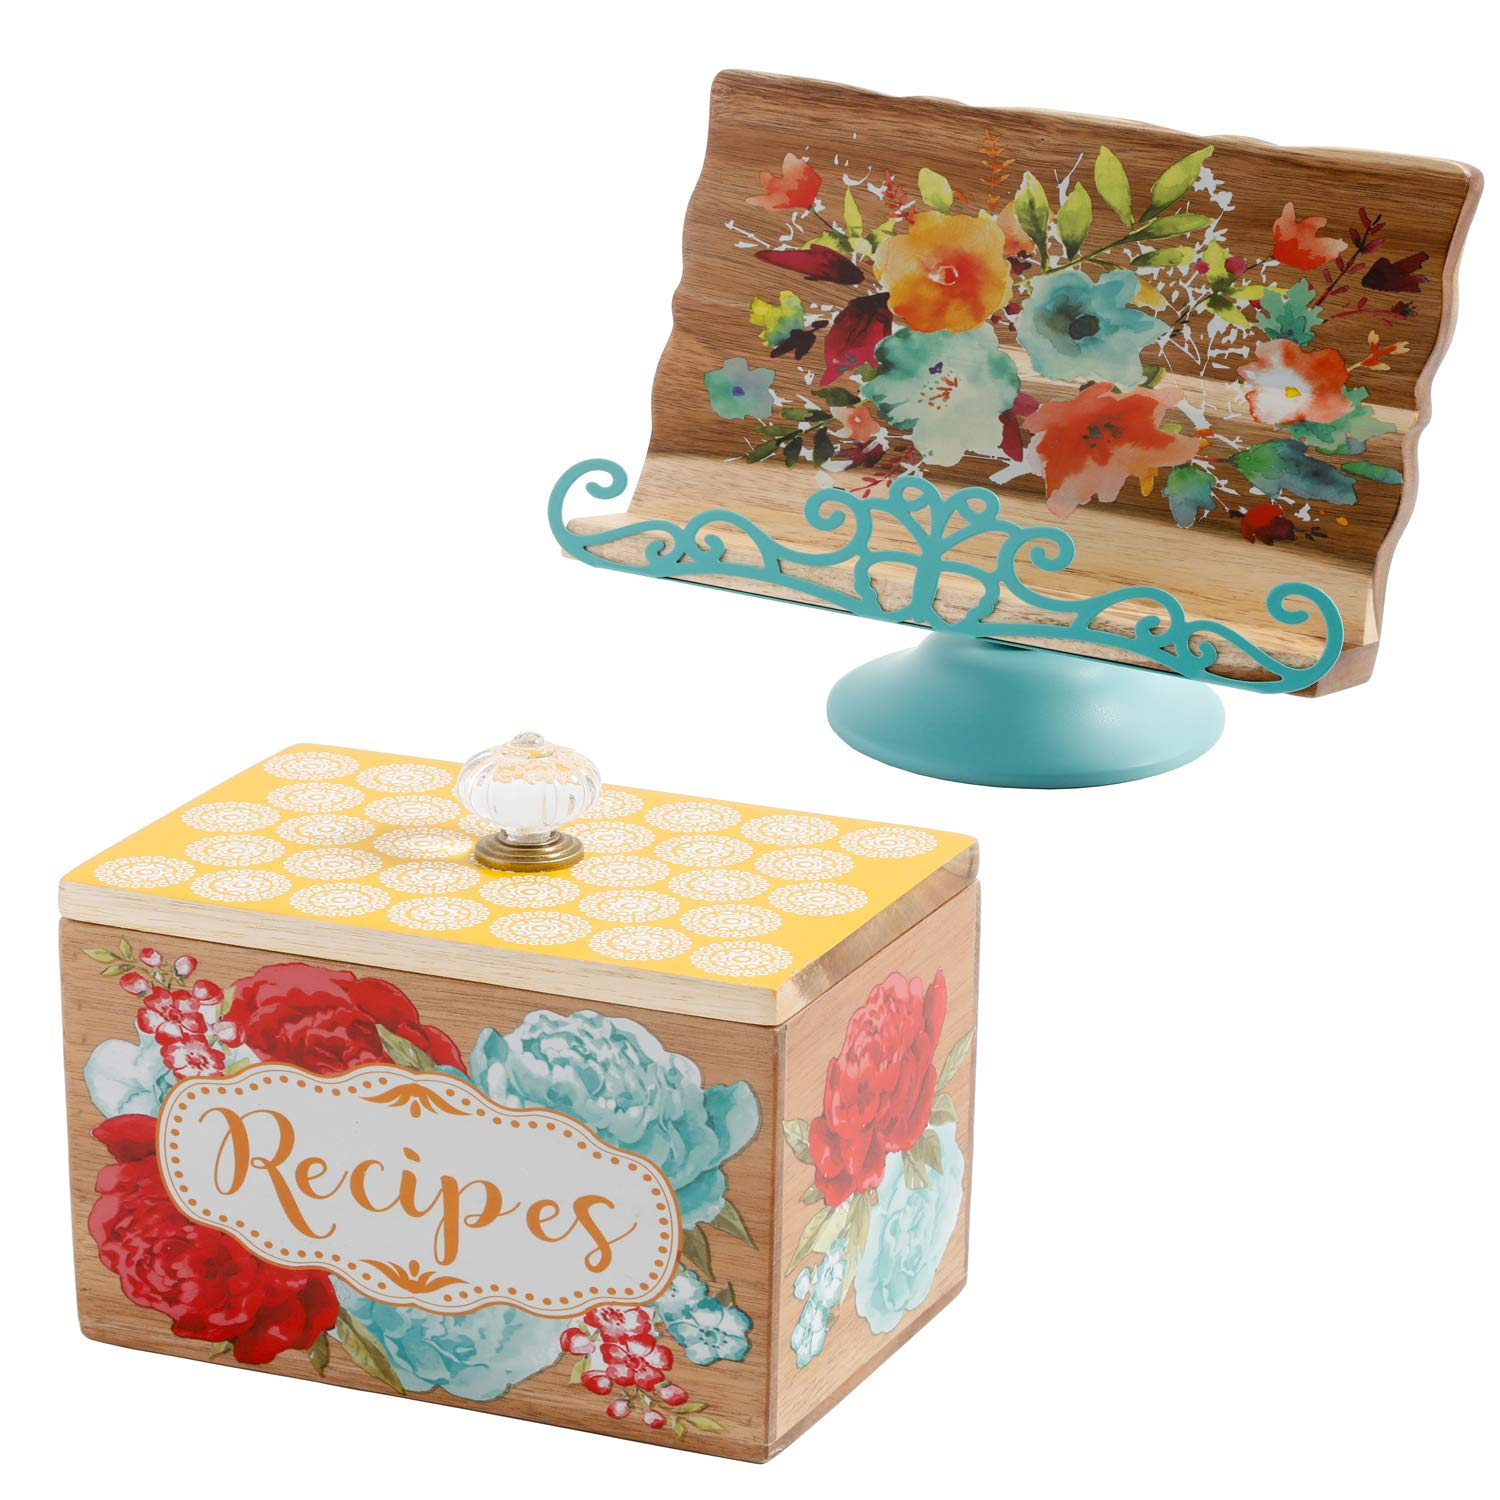 The Pioneer Woman Willow 10.4-Inch Cookbook Holder bundle with The Pioneer Woman 6.2-Inch Recipe Box by The Pioneer Woman